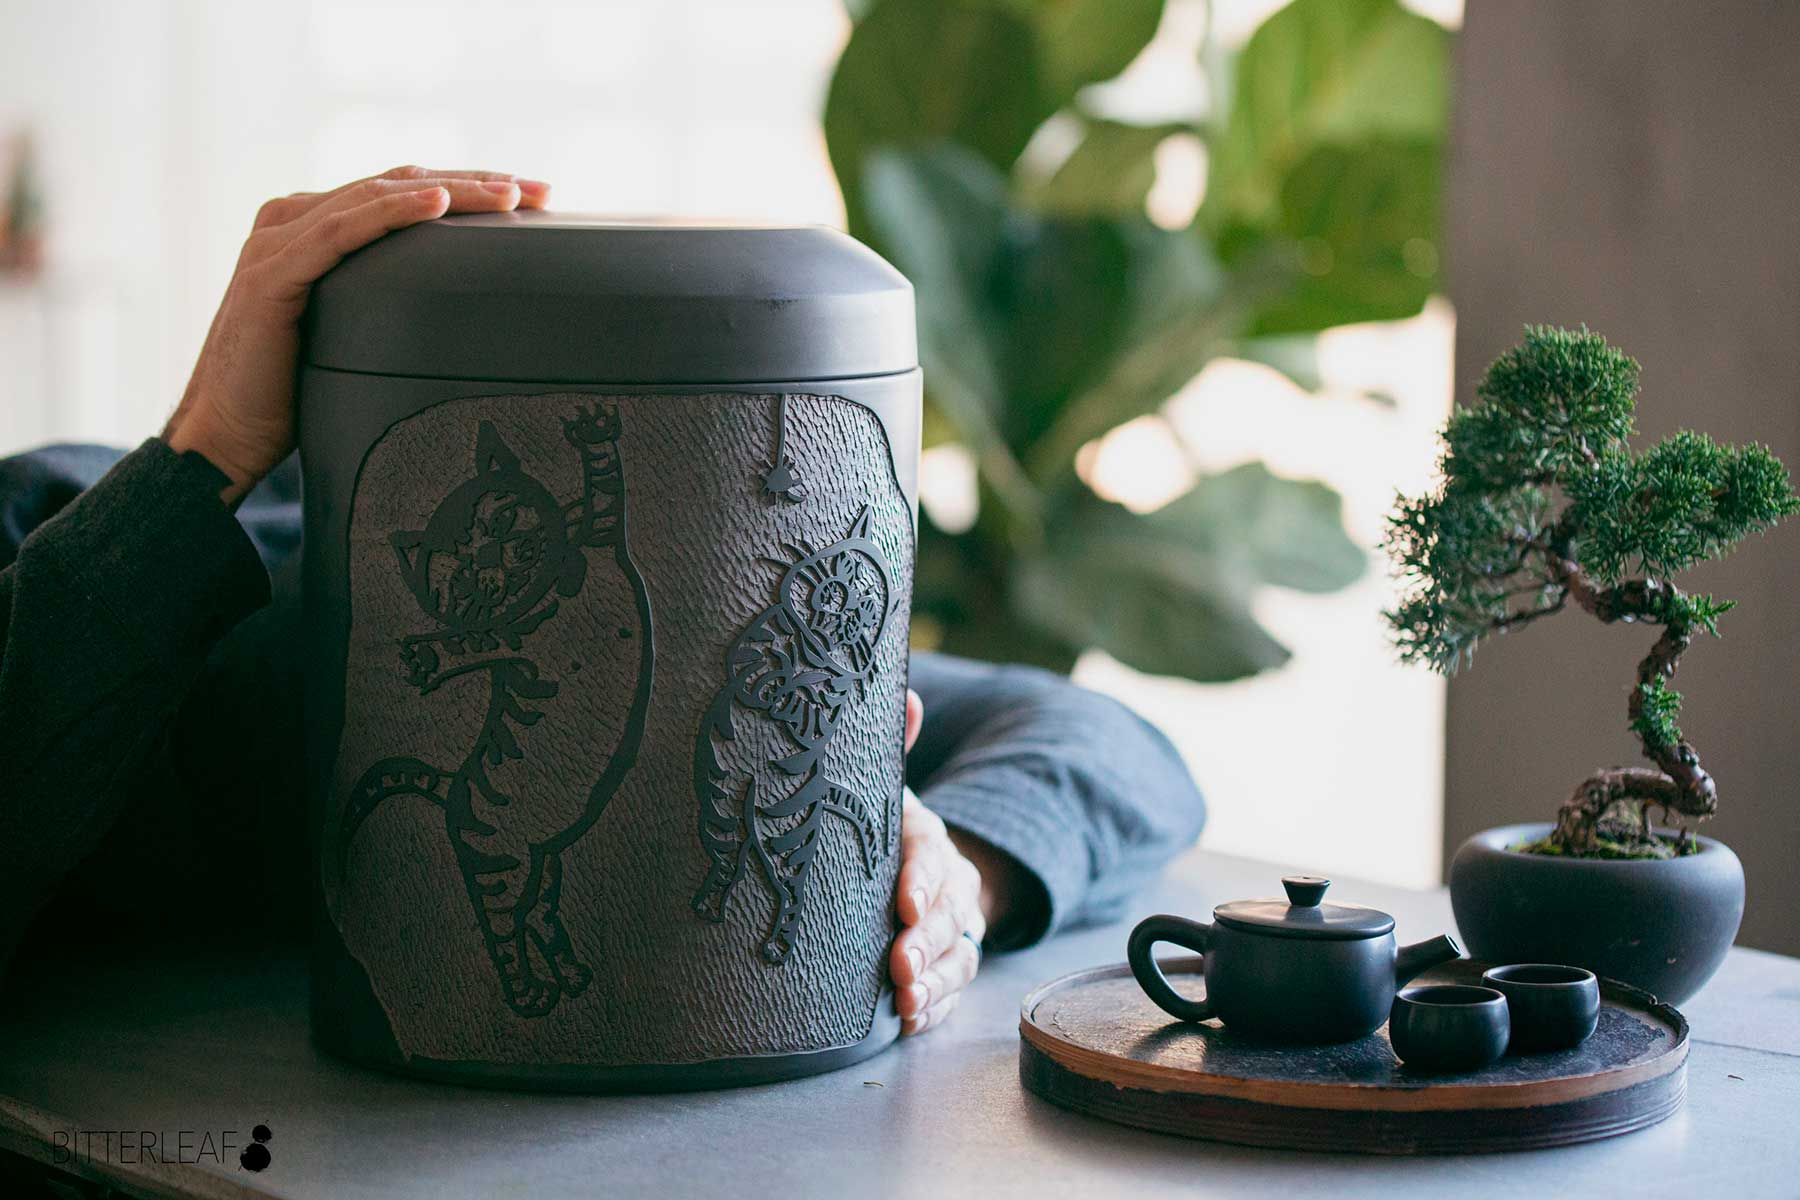 How to Store White Tea (or Just About Any Other Type of Tea)